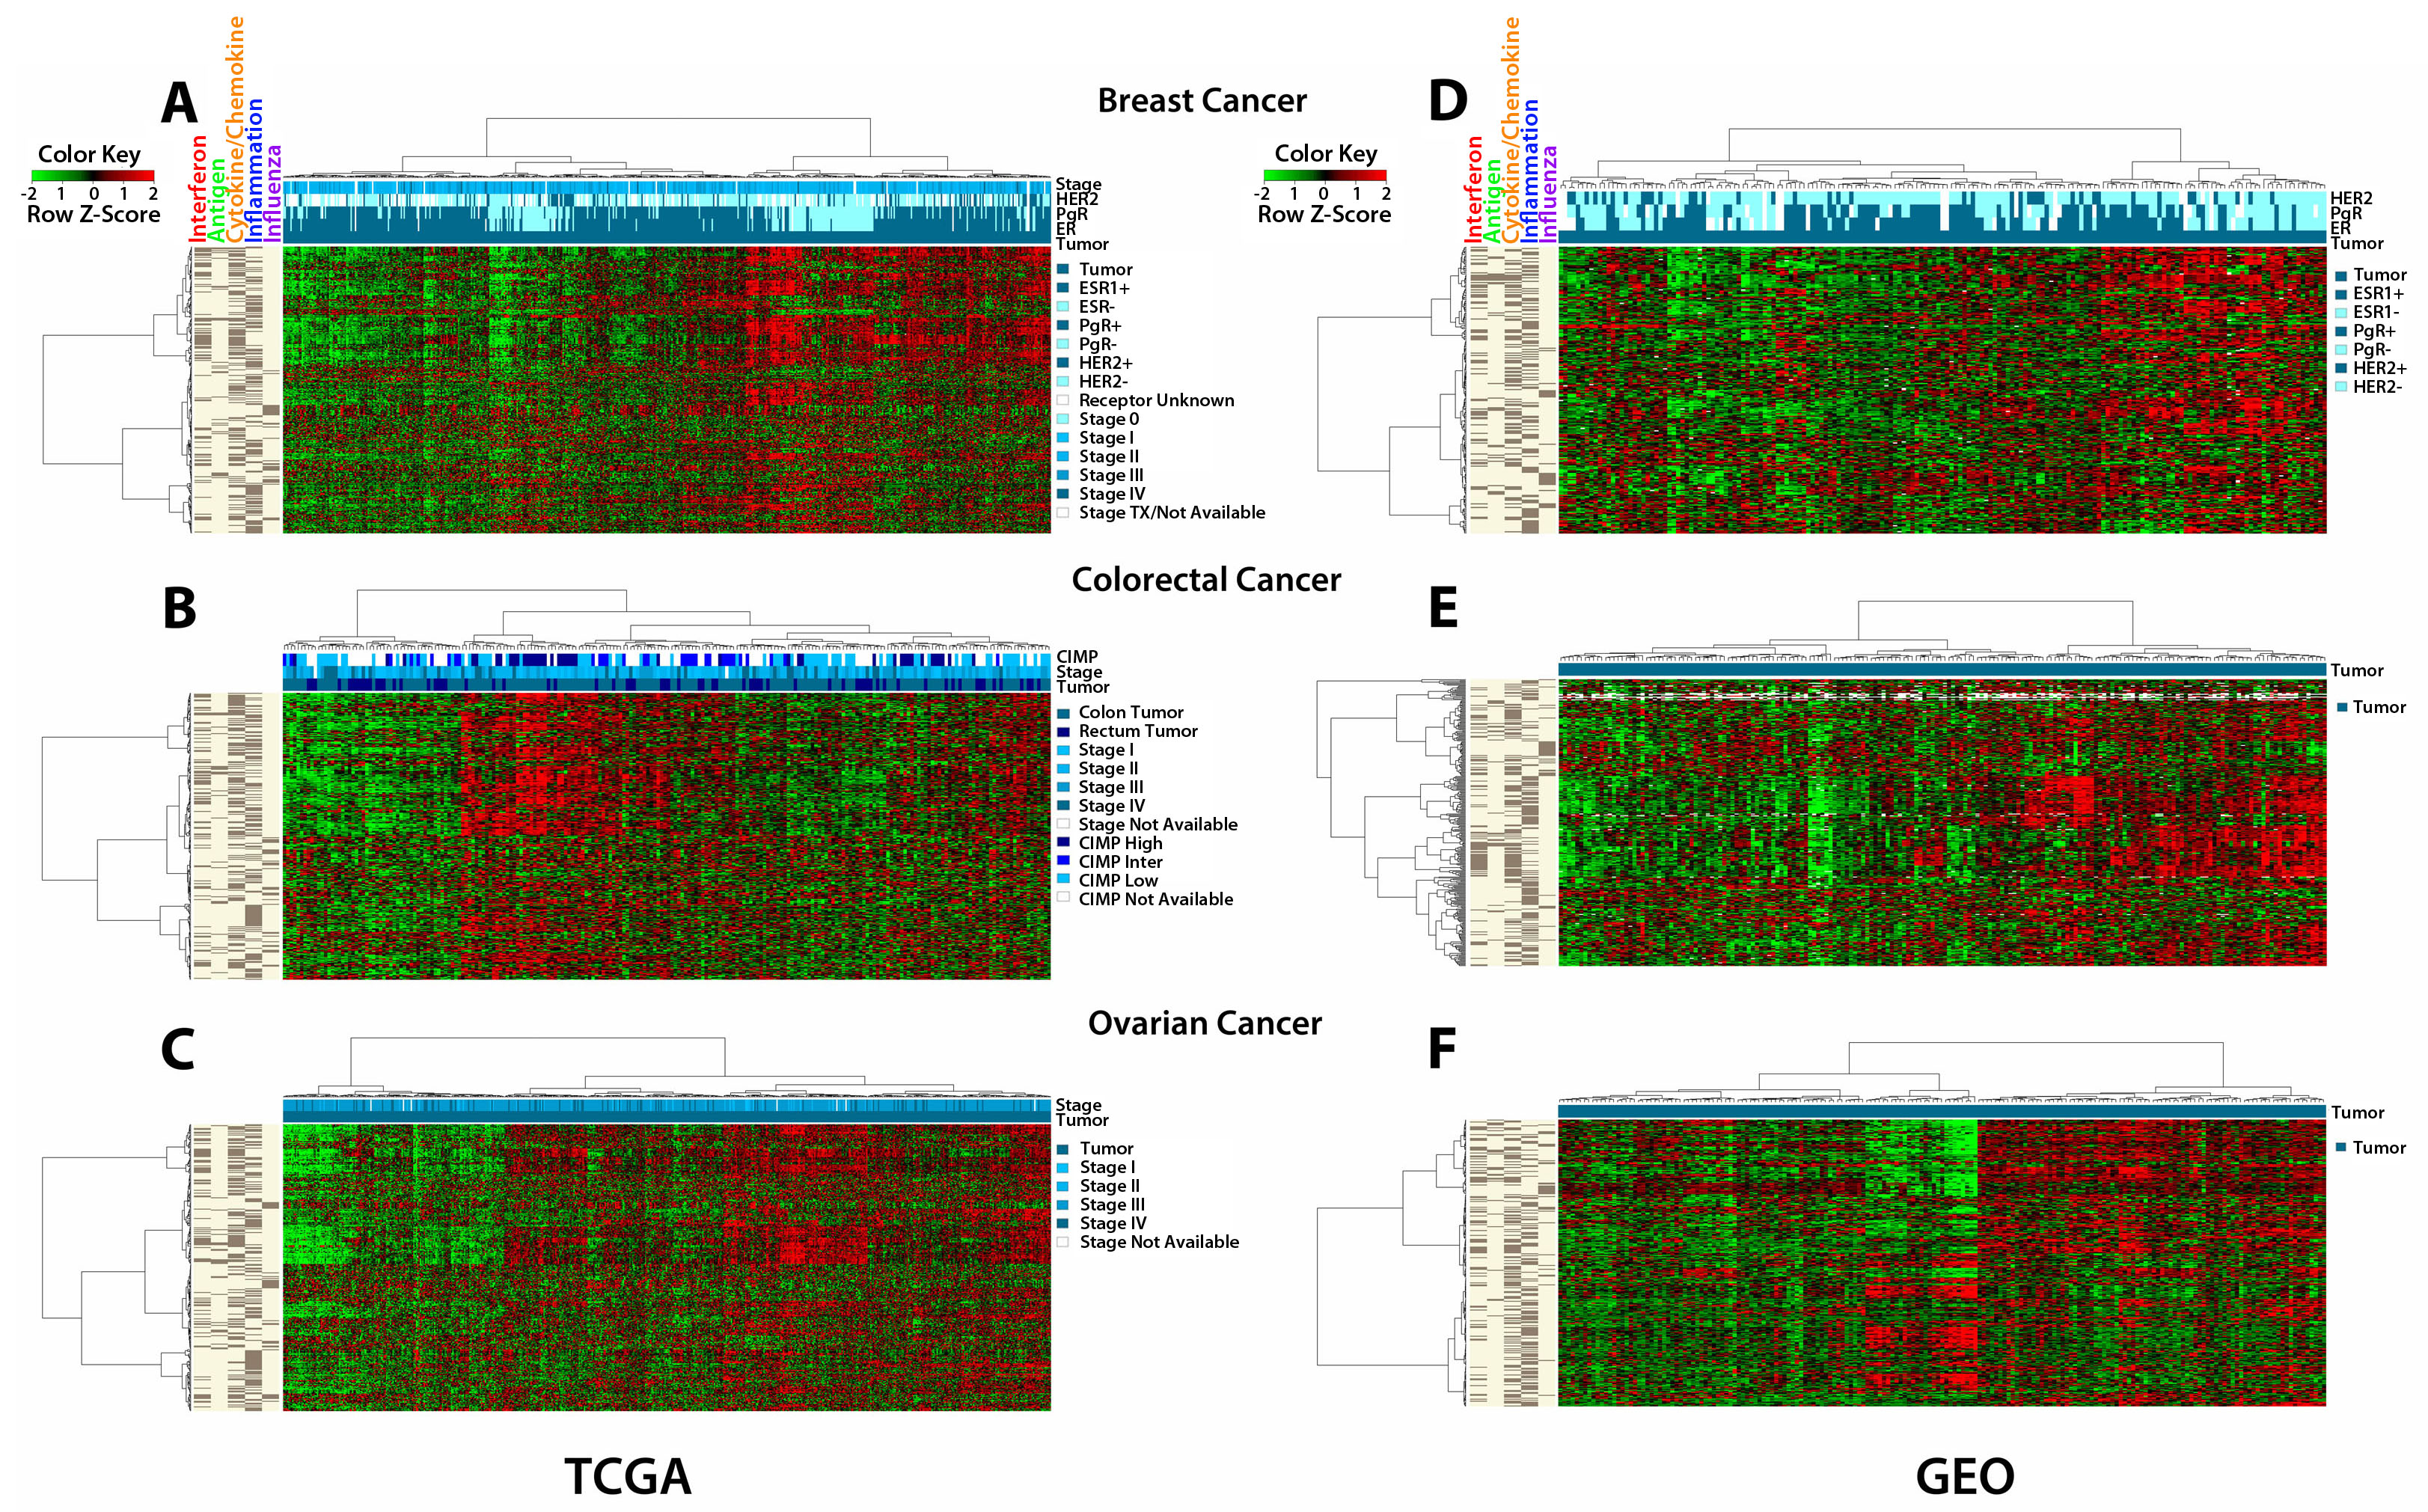 The AIM 317 gene panel clusters TCGA and GEO tumors into high and low immune signatures.